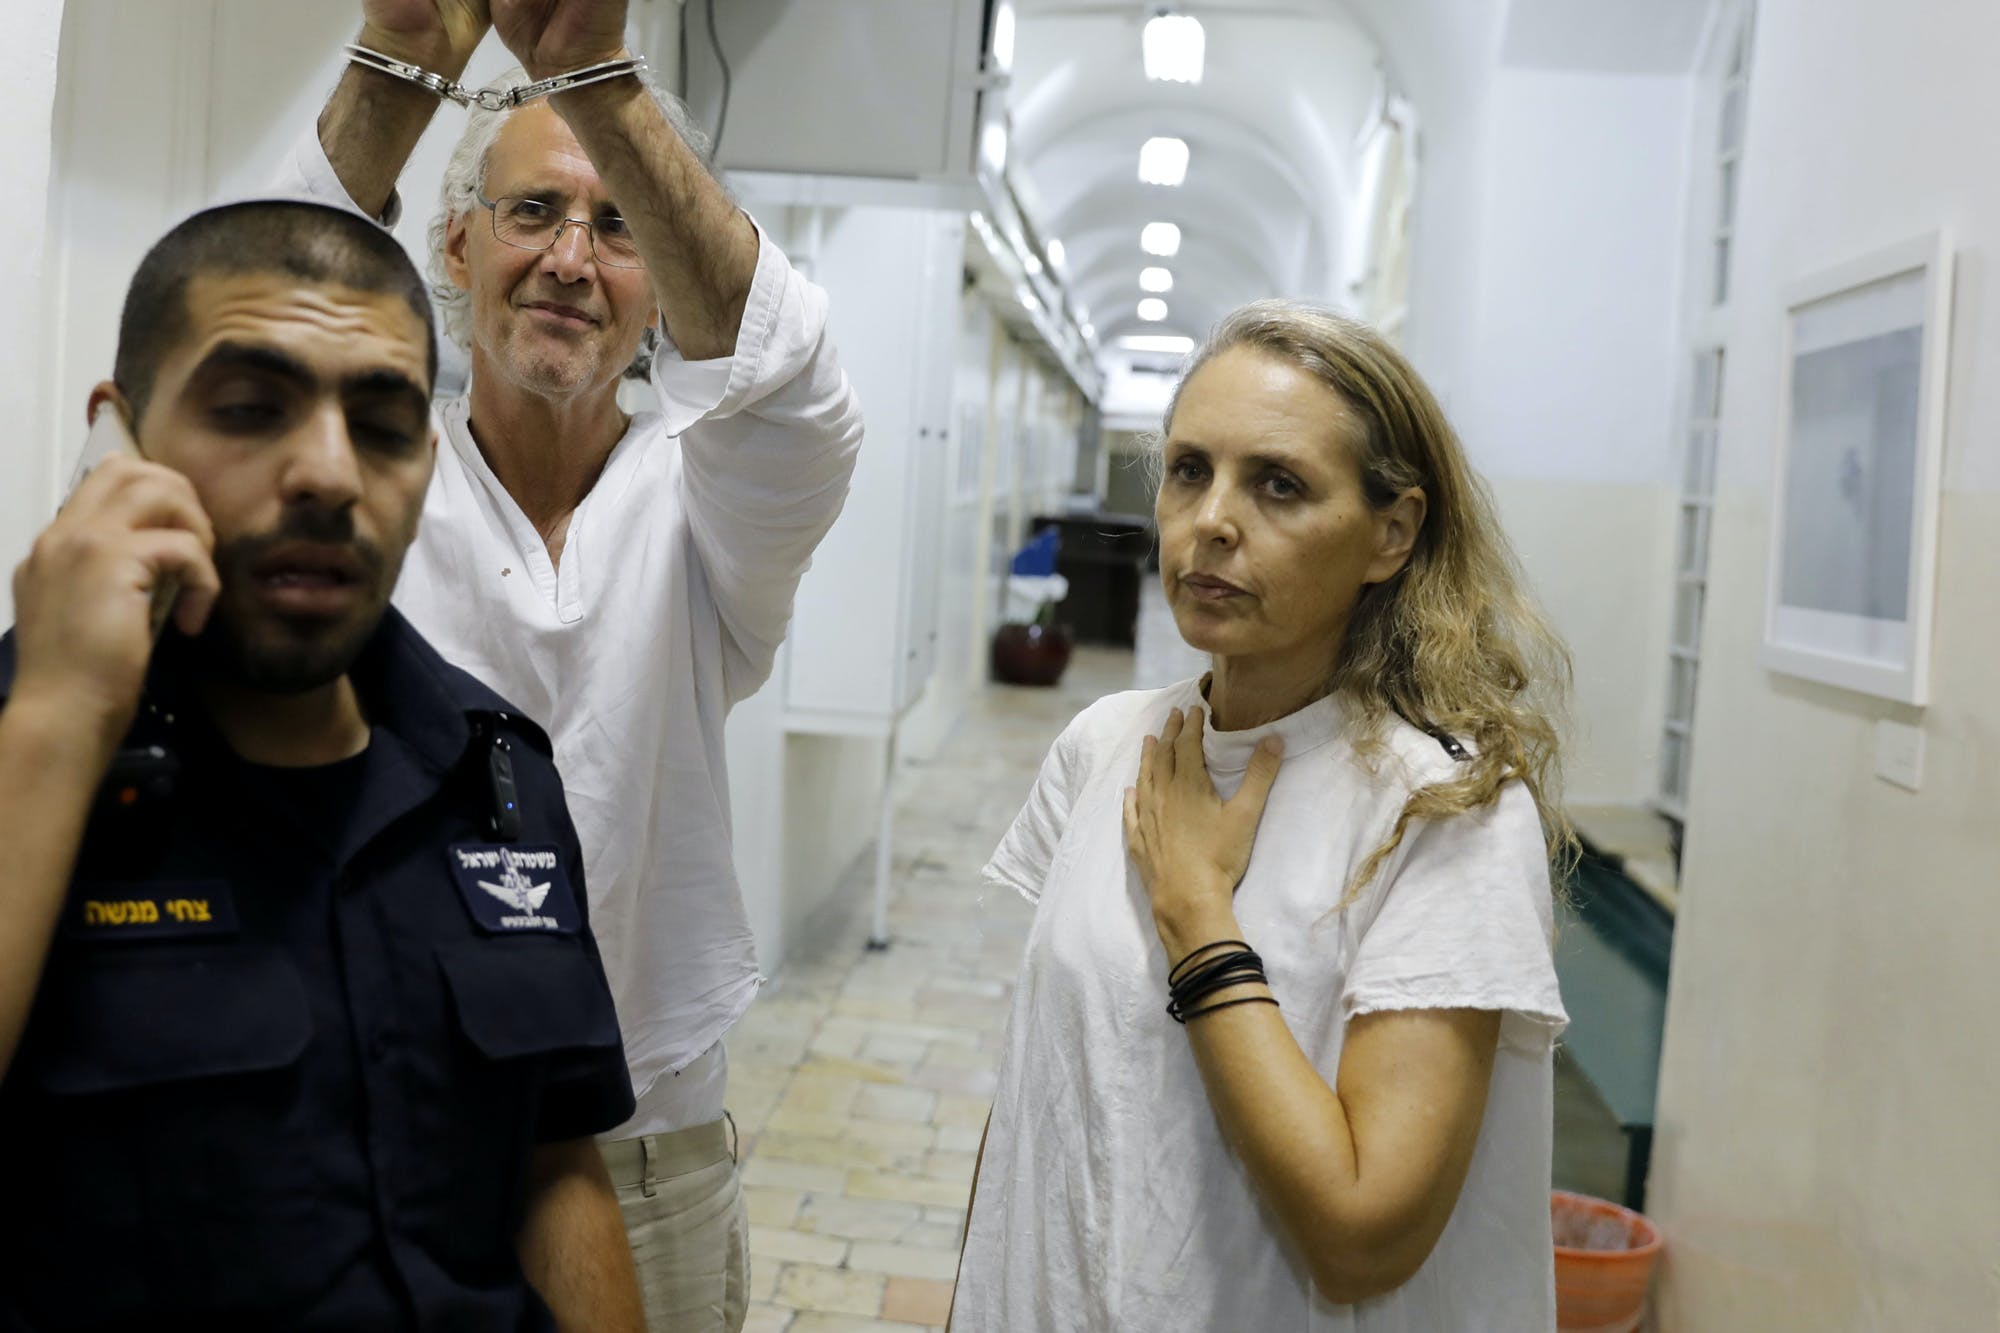 American-French law professor Frank Romano (C) who was arrested by Israel while protesting against the demolition of a Palestinian village in the West Bank gestures at the Jerusalem court on September 16, 2018.To his right is his lawyer Gaby Lasky. - US-born Romano, who teaches law at the Paris Nanterre University, was detained two days ago while taking part in a demonstration at the Bedouin village of Khan al-Ahmar, east of Jerusalem. His lawyer said today that he will be deported. (Photo by Ahmad GHARABLI / AFP)        (Photo credit should read AHMAD GHARABLI/AFP via Getty Images)